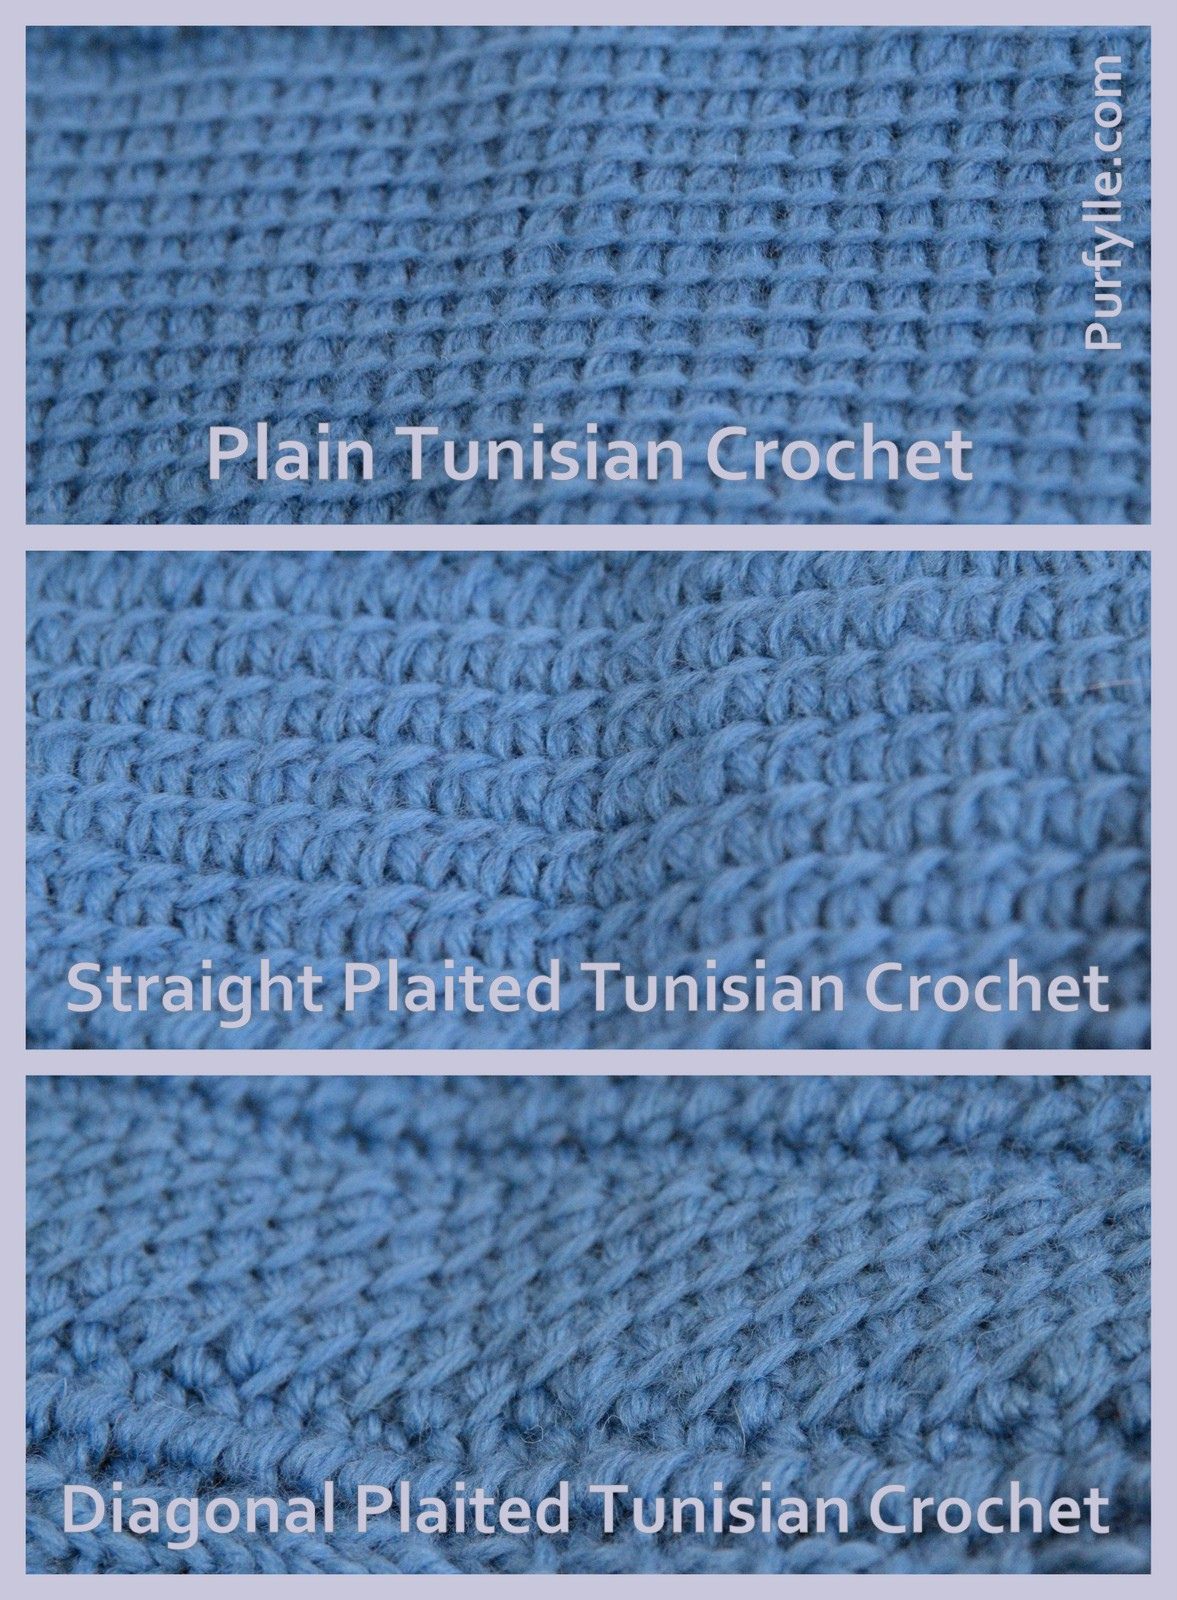 Tunisian crochet stitch types